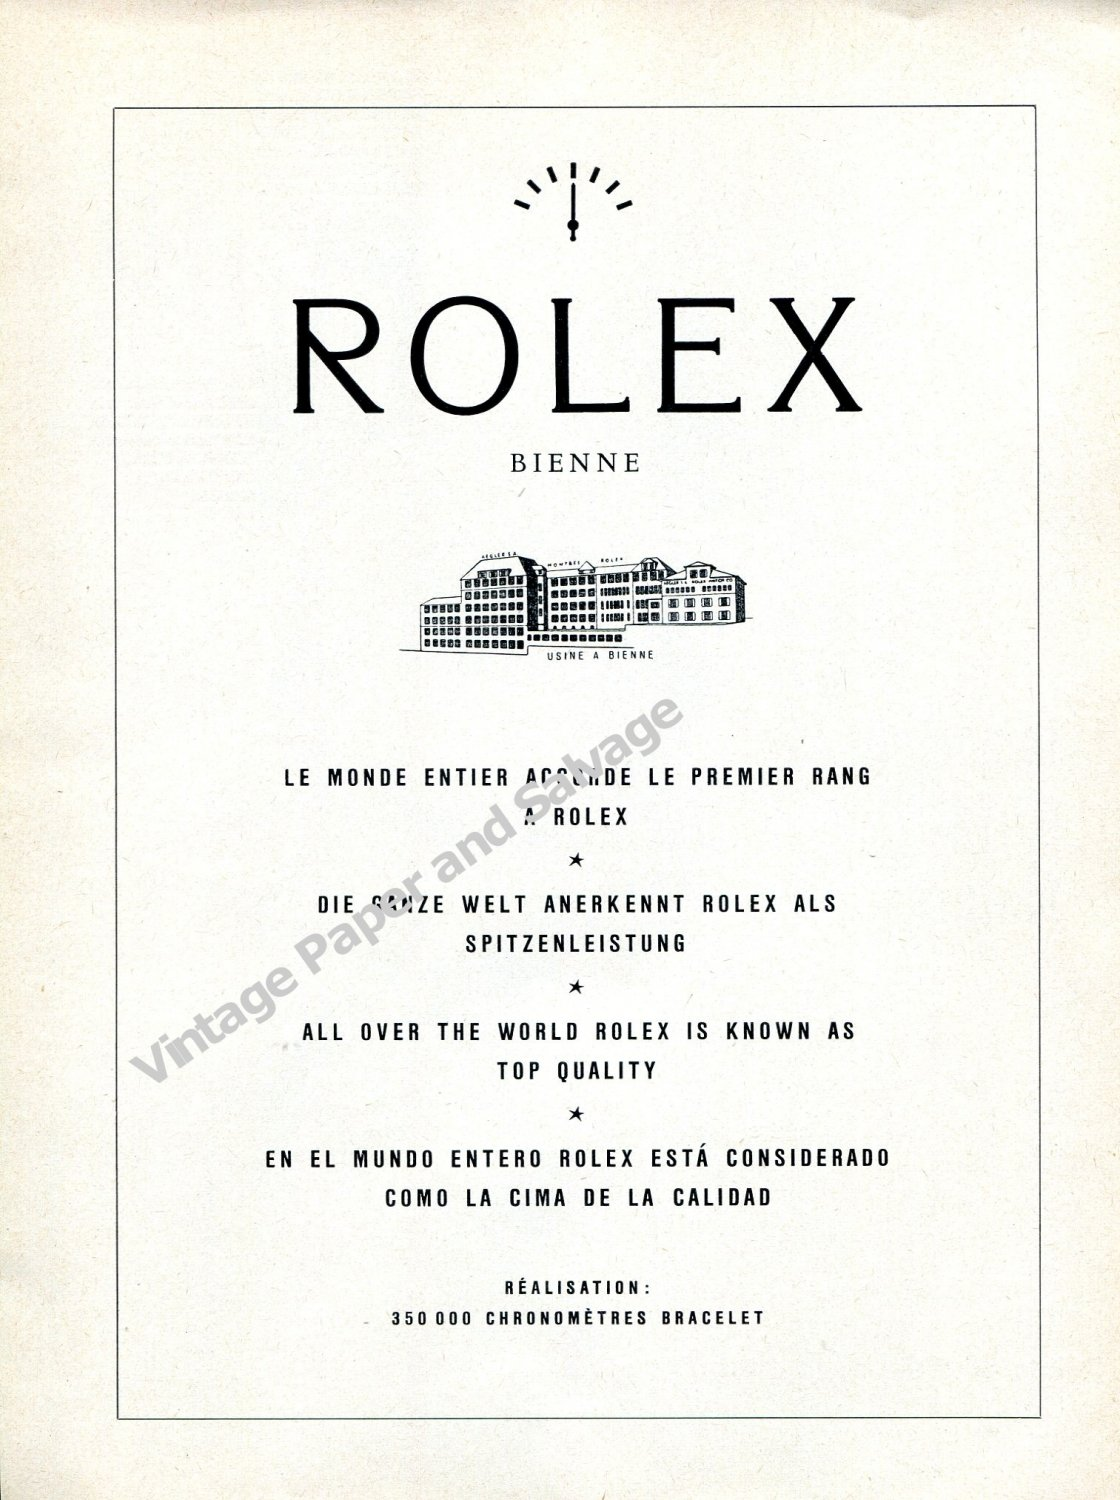 Vintage 1959 Rolex Watch Company 350,000 Chronometers Swiss Ad Advert Suisse Switzerland